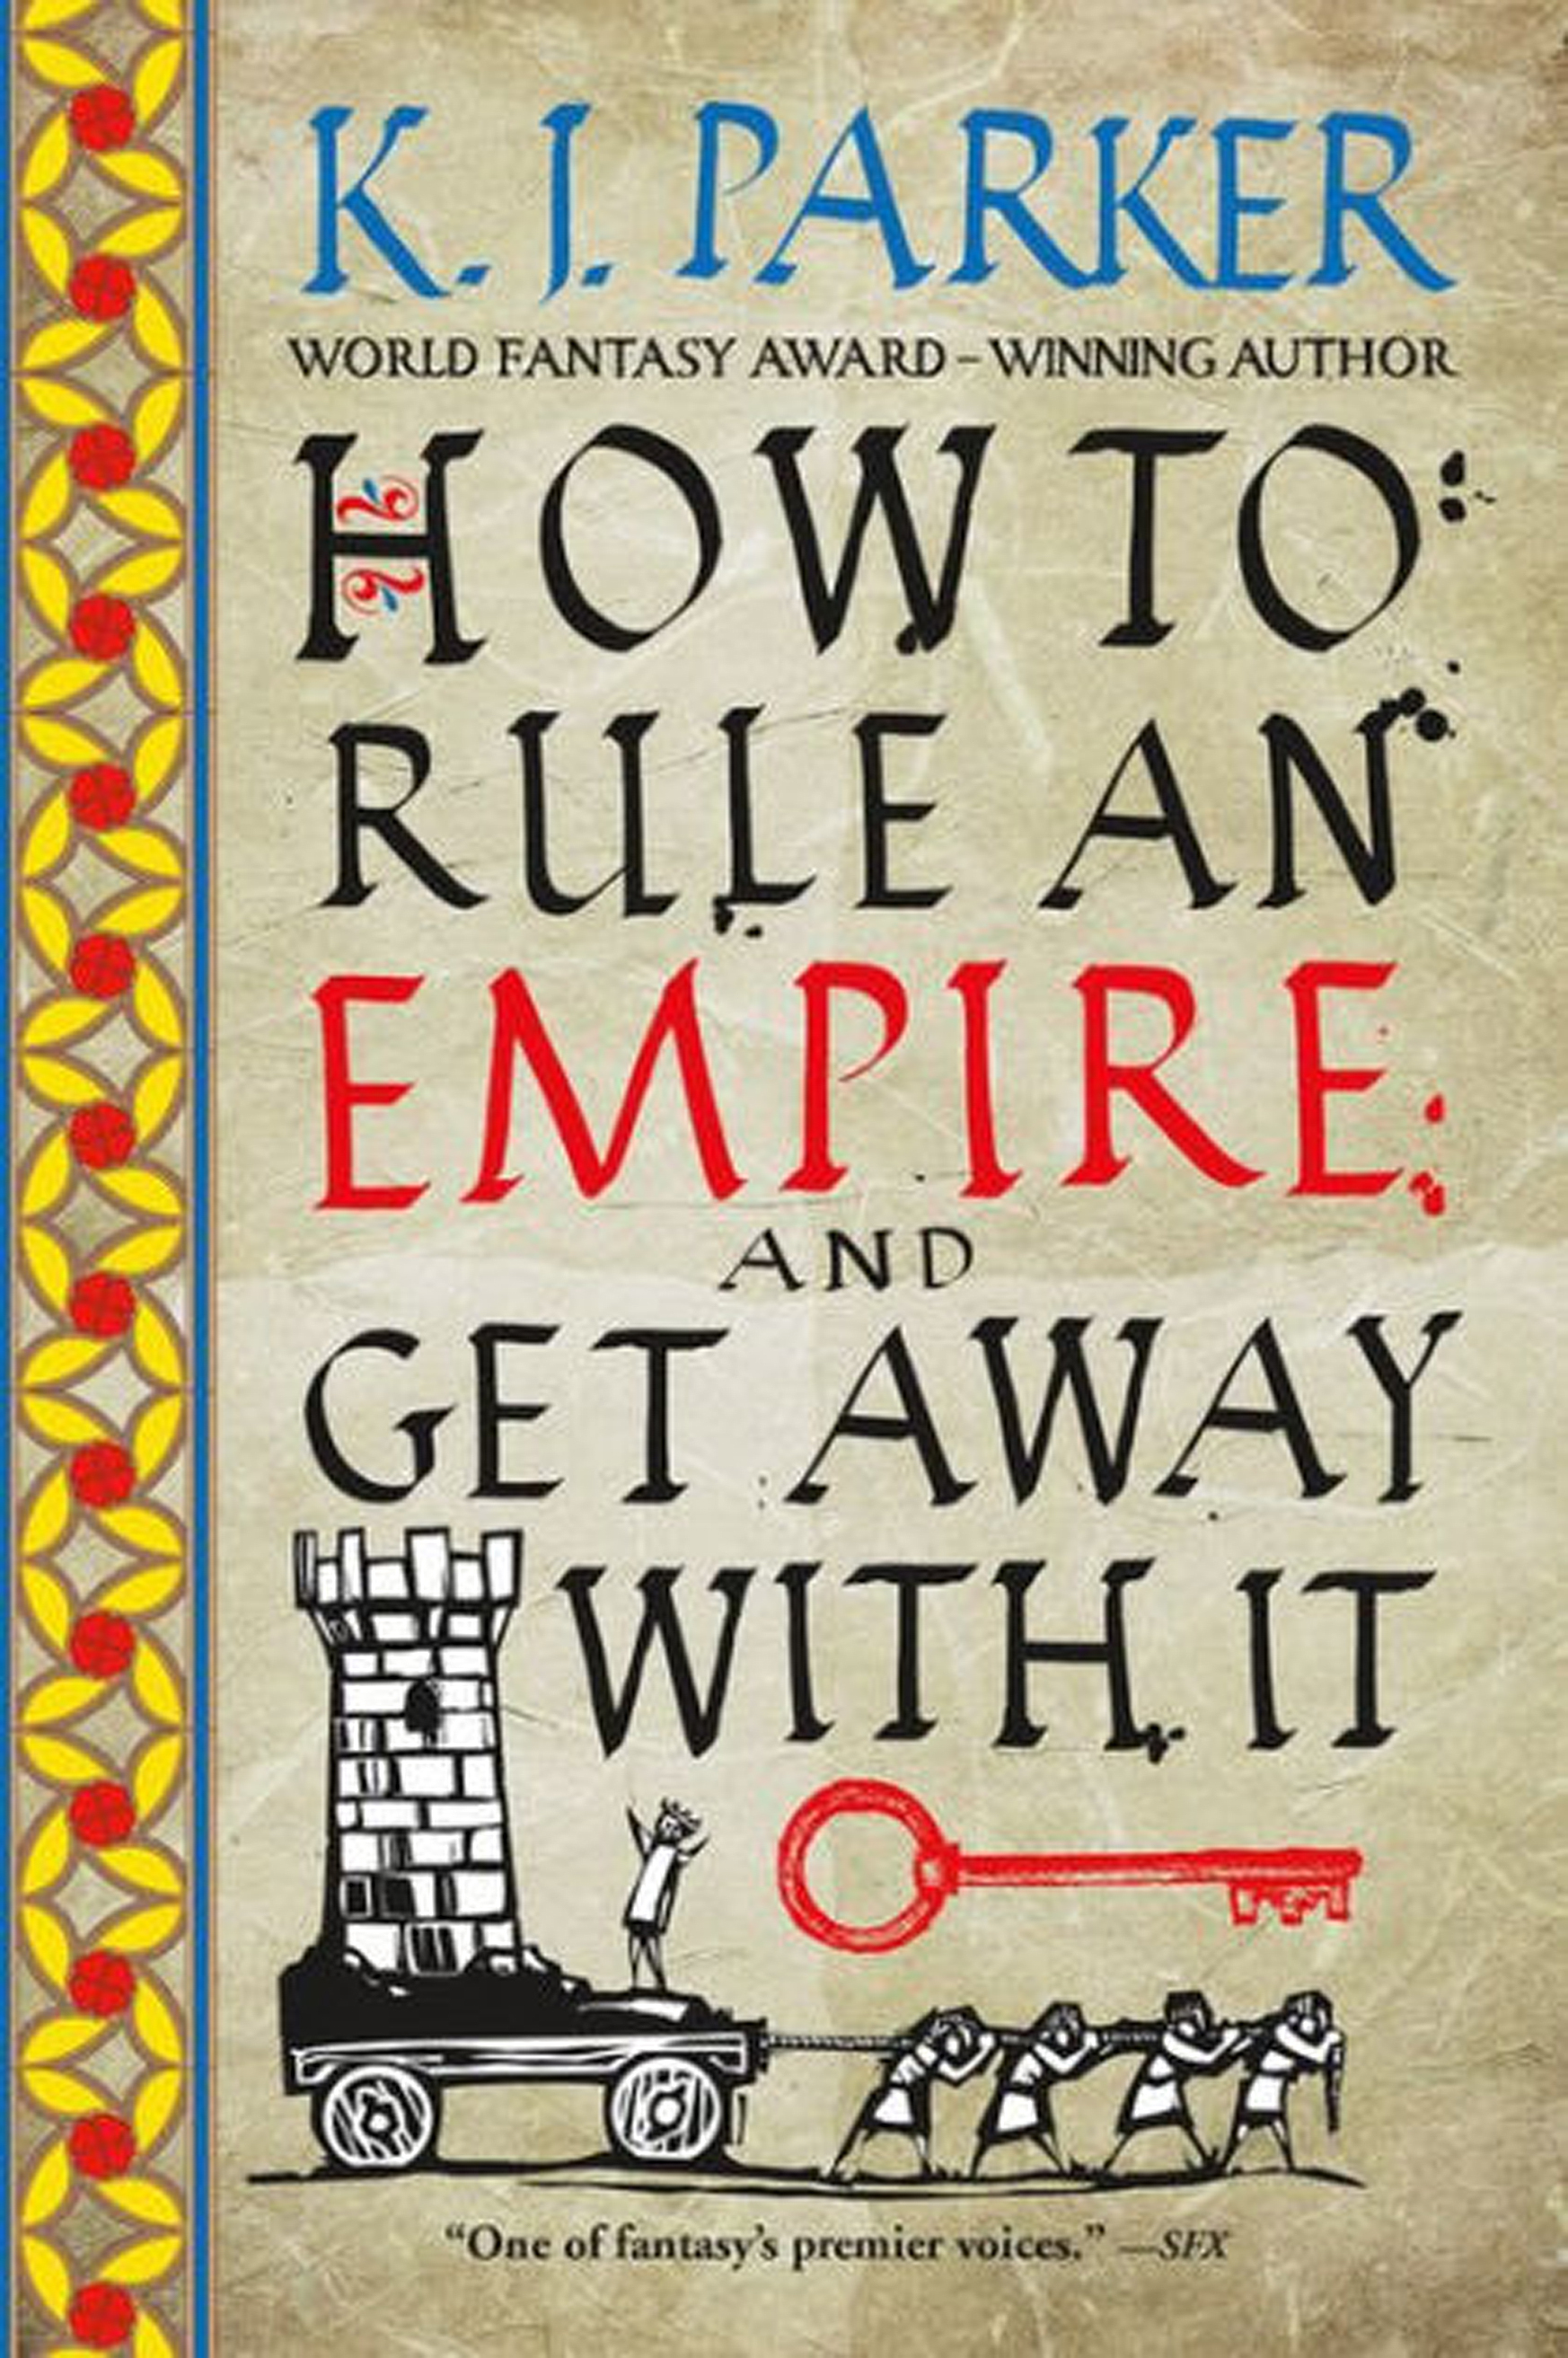 HOW TO RULE AN EMPIRE